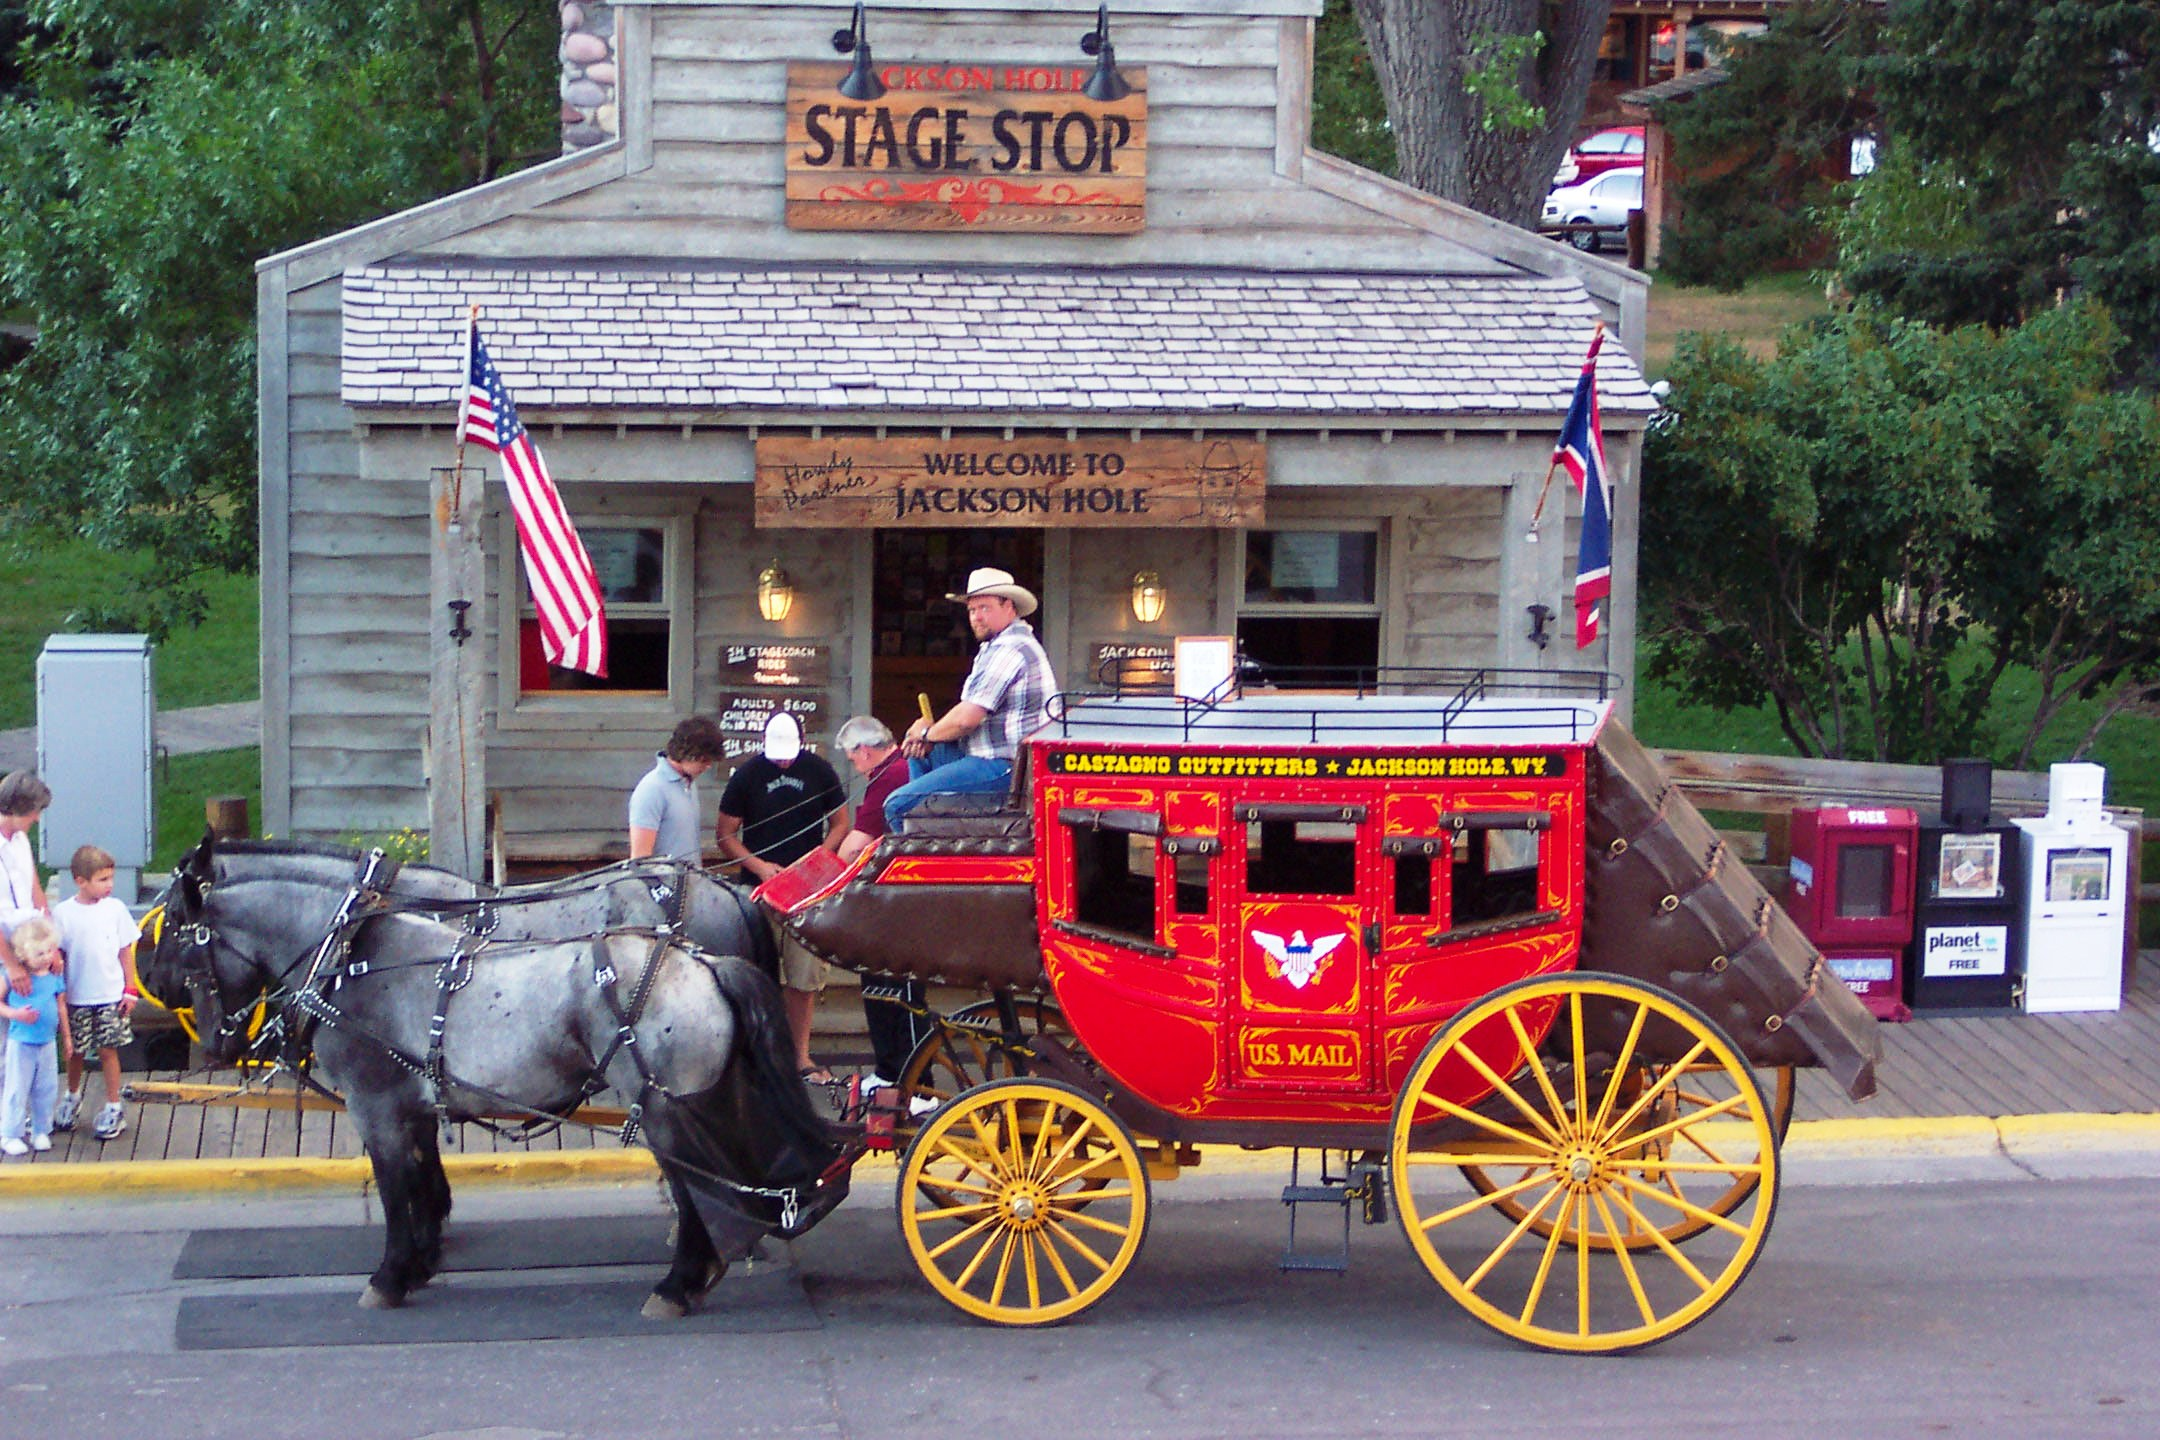 Stagecoach rides offer unique sightseeing in Jackson.